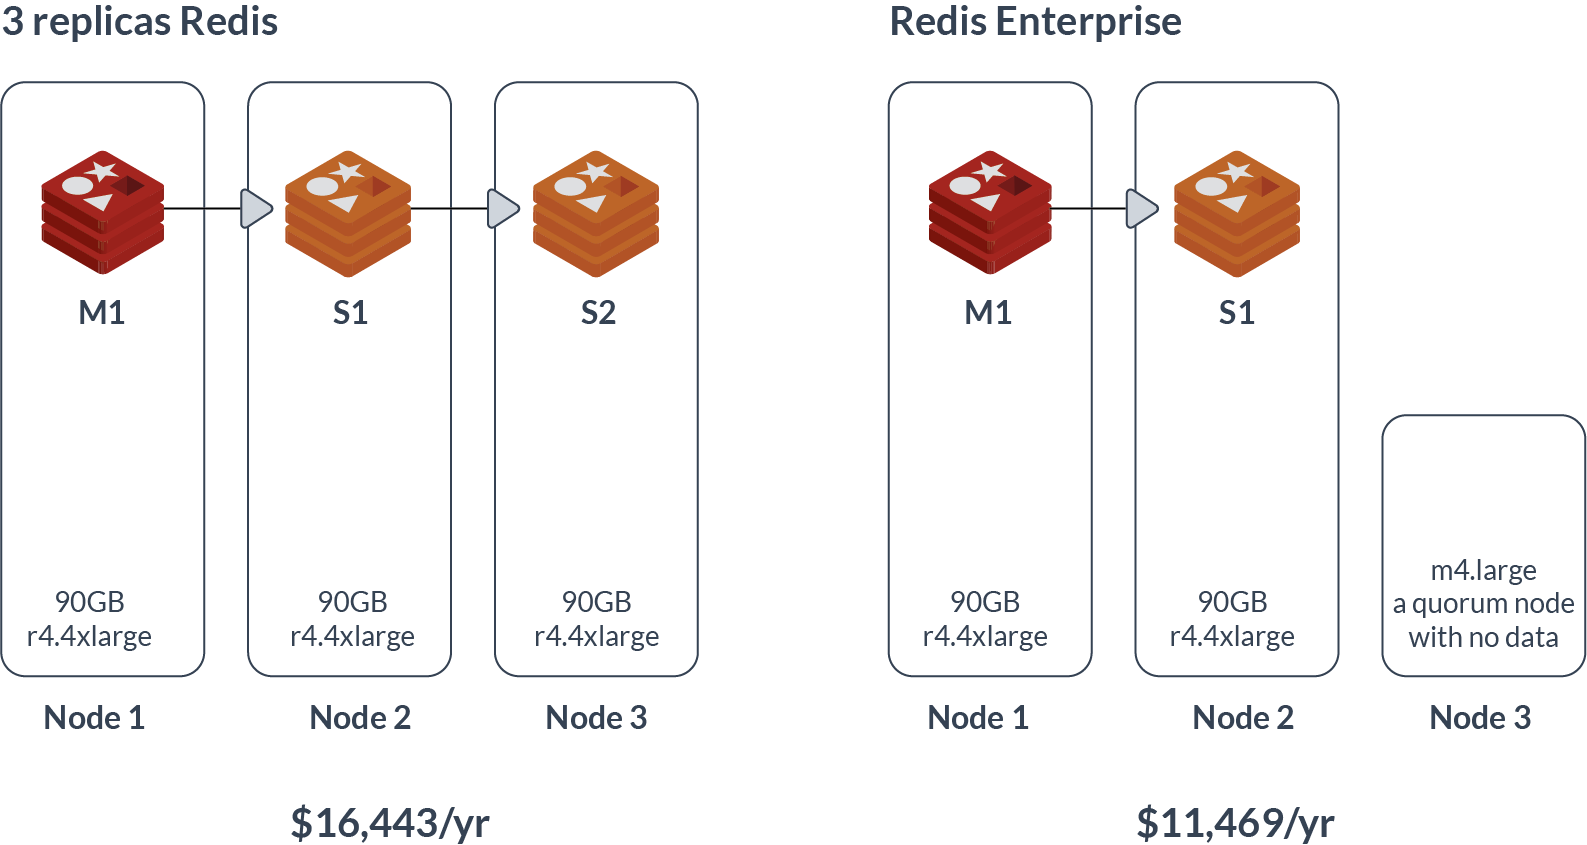 diagram-highly-available-redis